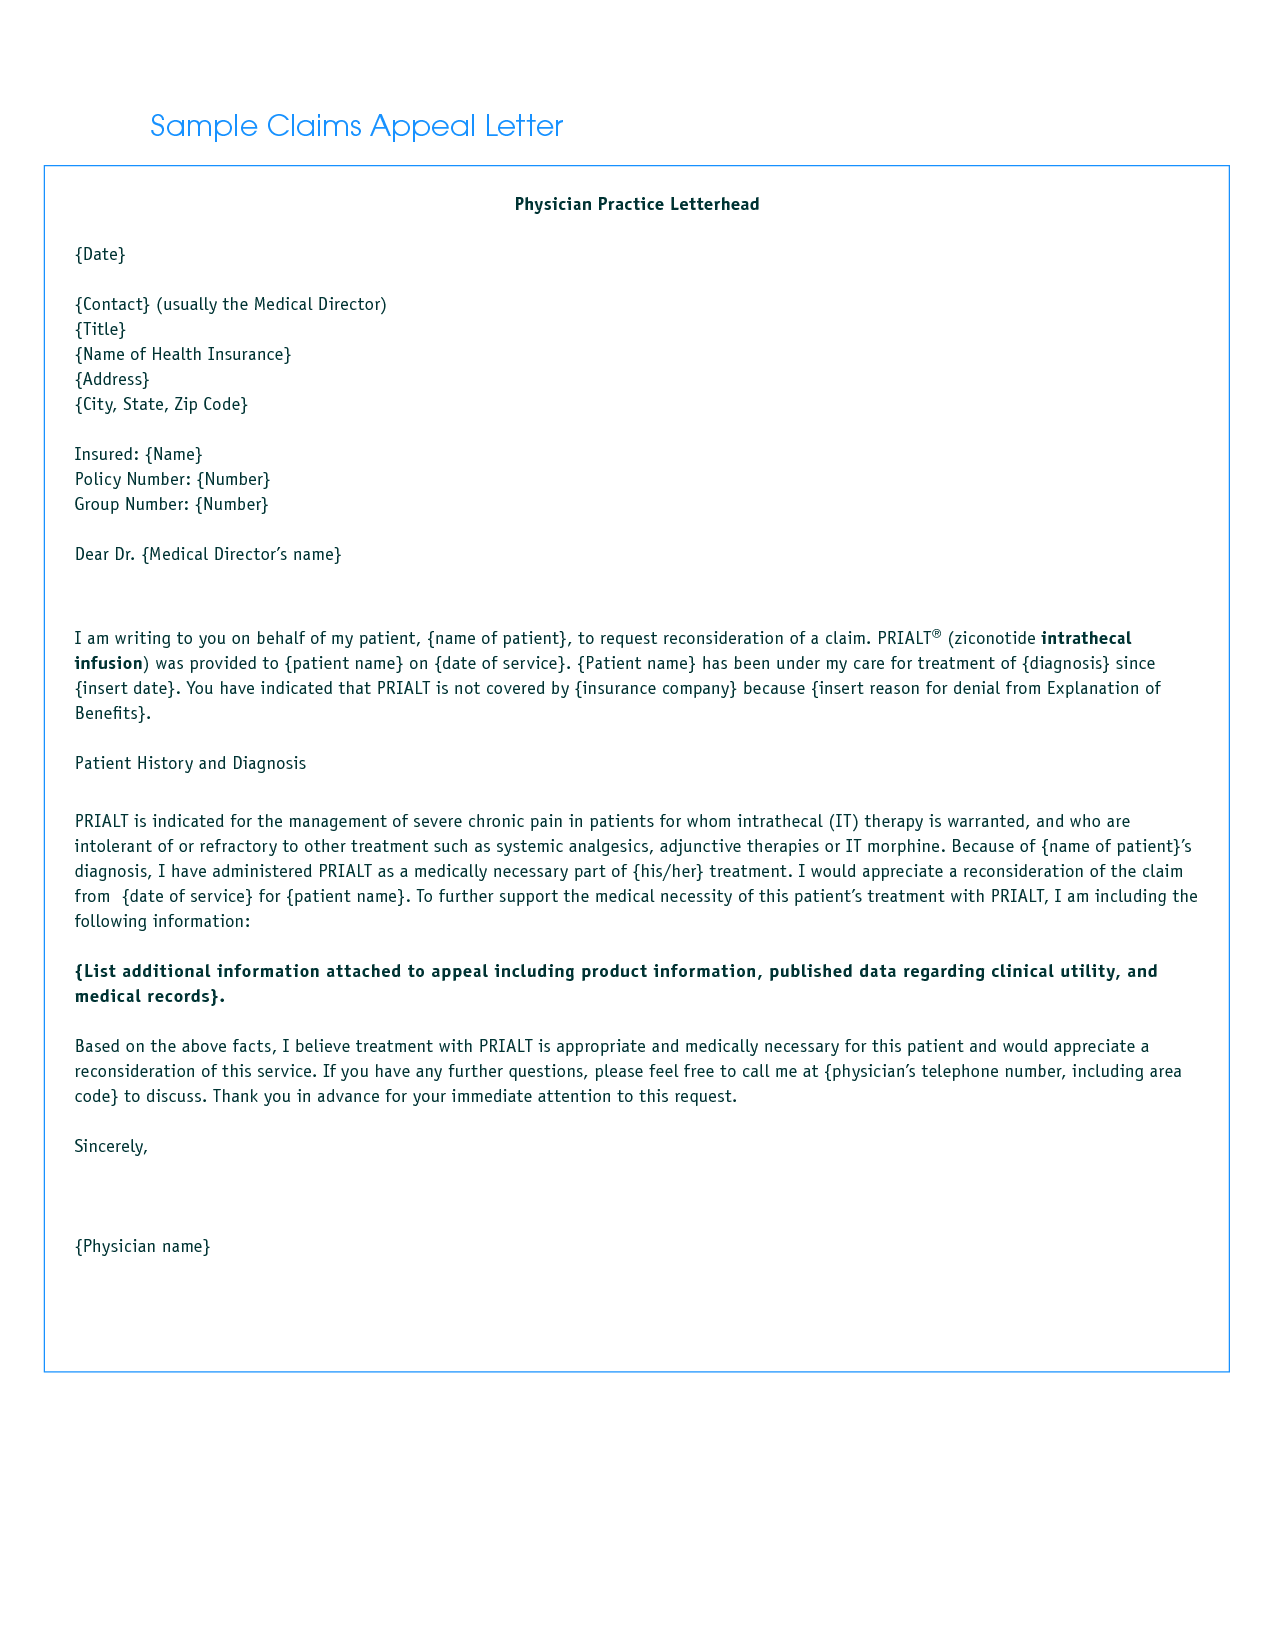 Letter Appeal And Health Insurance Letters Sample Sawyoo Medical